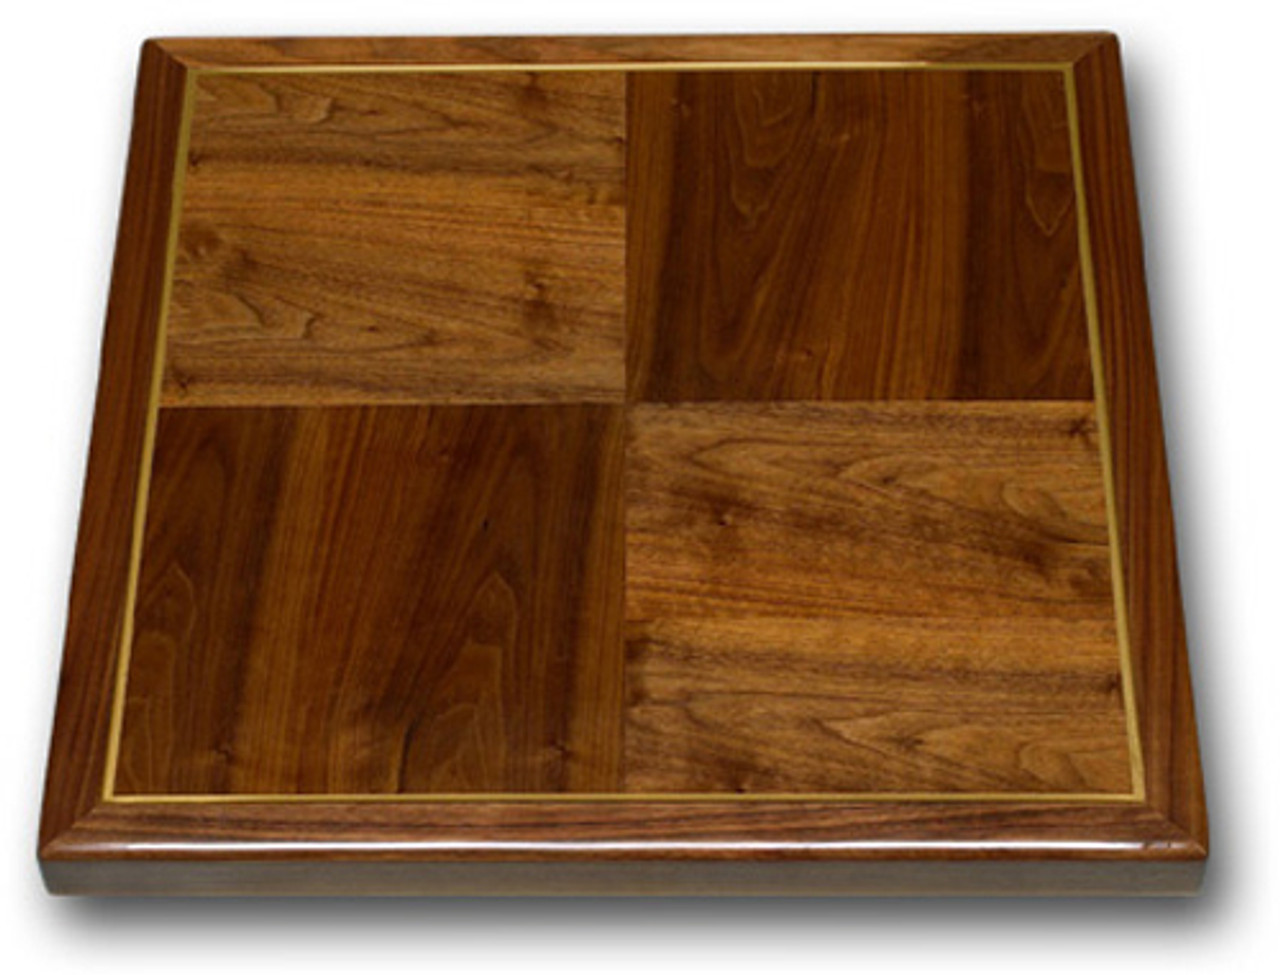 Hoffmann-MOBIL-Press-Walnut-Parquet-table-top-sample